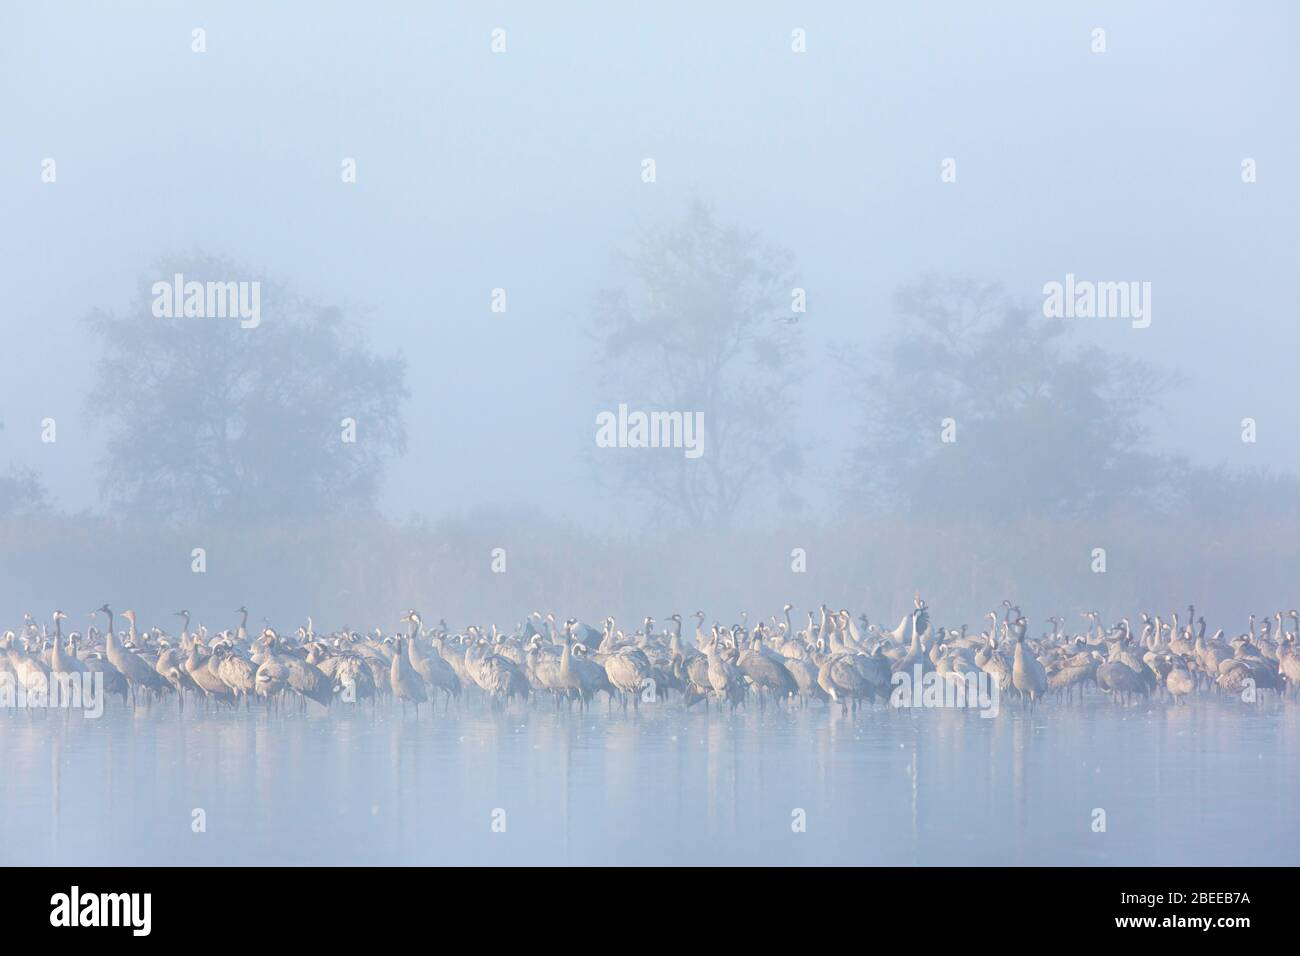 Flock of common cranes / Eurasian crane (Grus grus) group resting in shallow water during dense early morning mist in autumn / fall Stock Photo